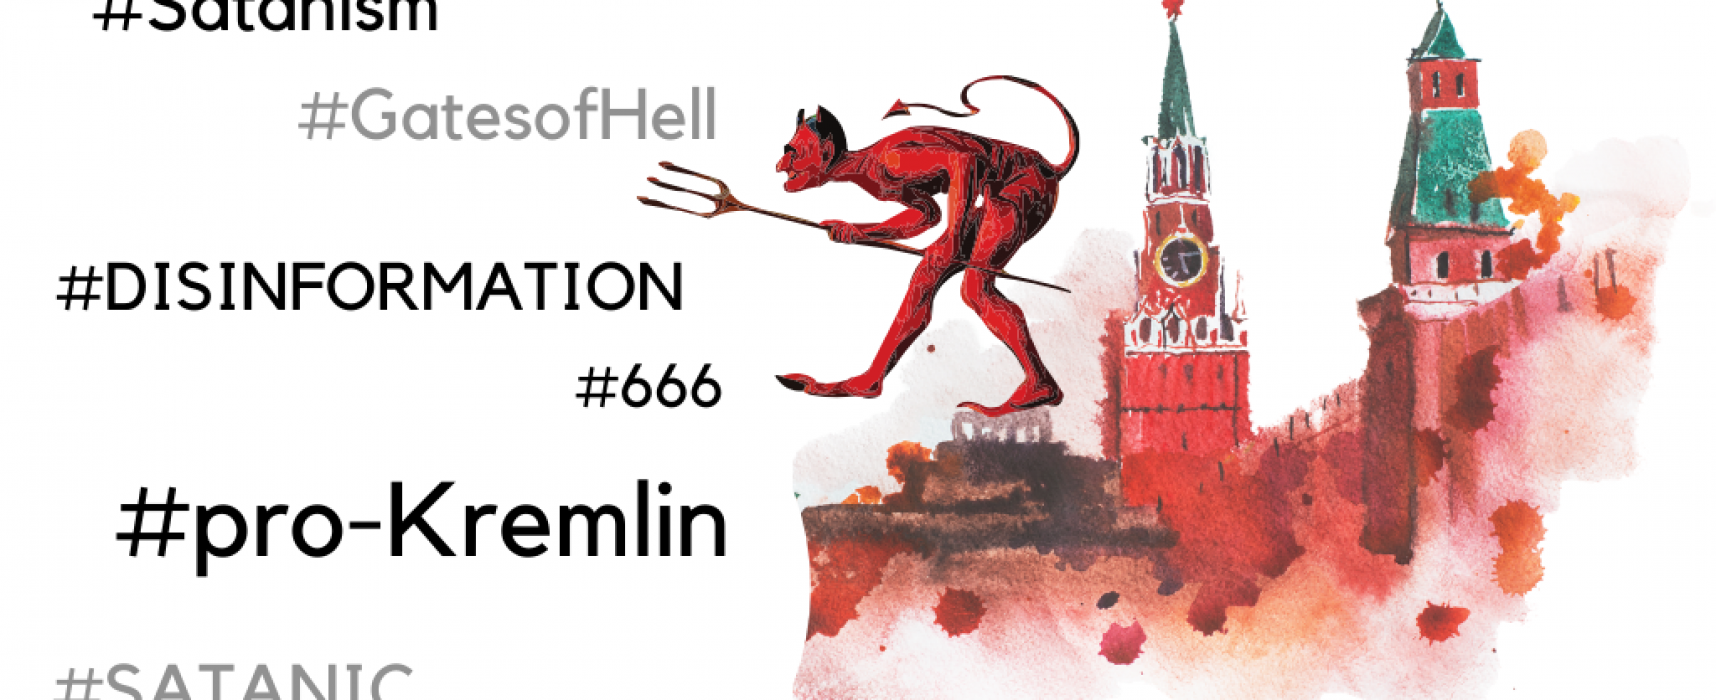 Satan in the service of disinformation